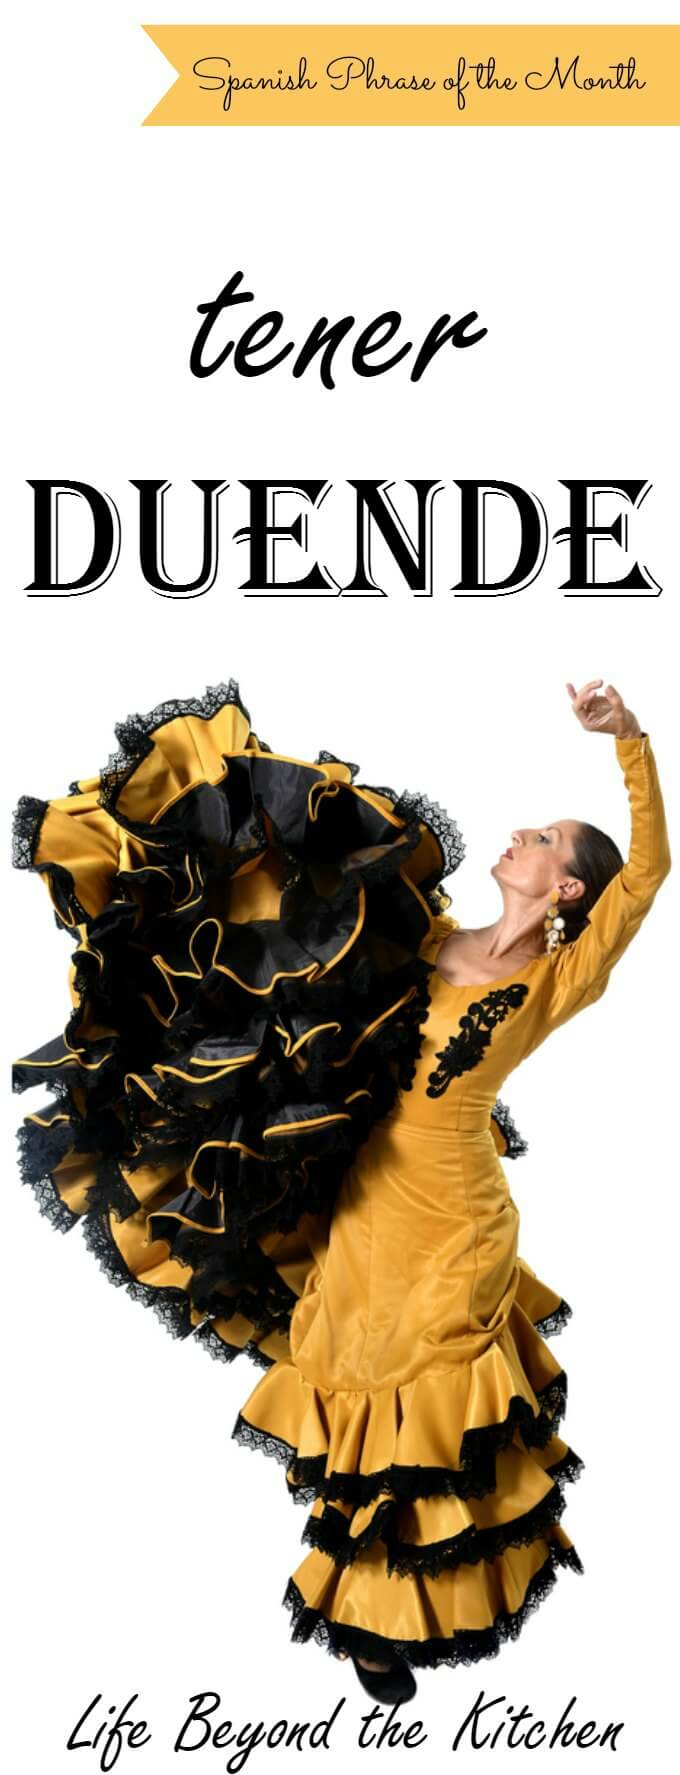 Tener Duende: The mysterious power of art to evoke a strong response ~ Life Beyond the Kitchen